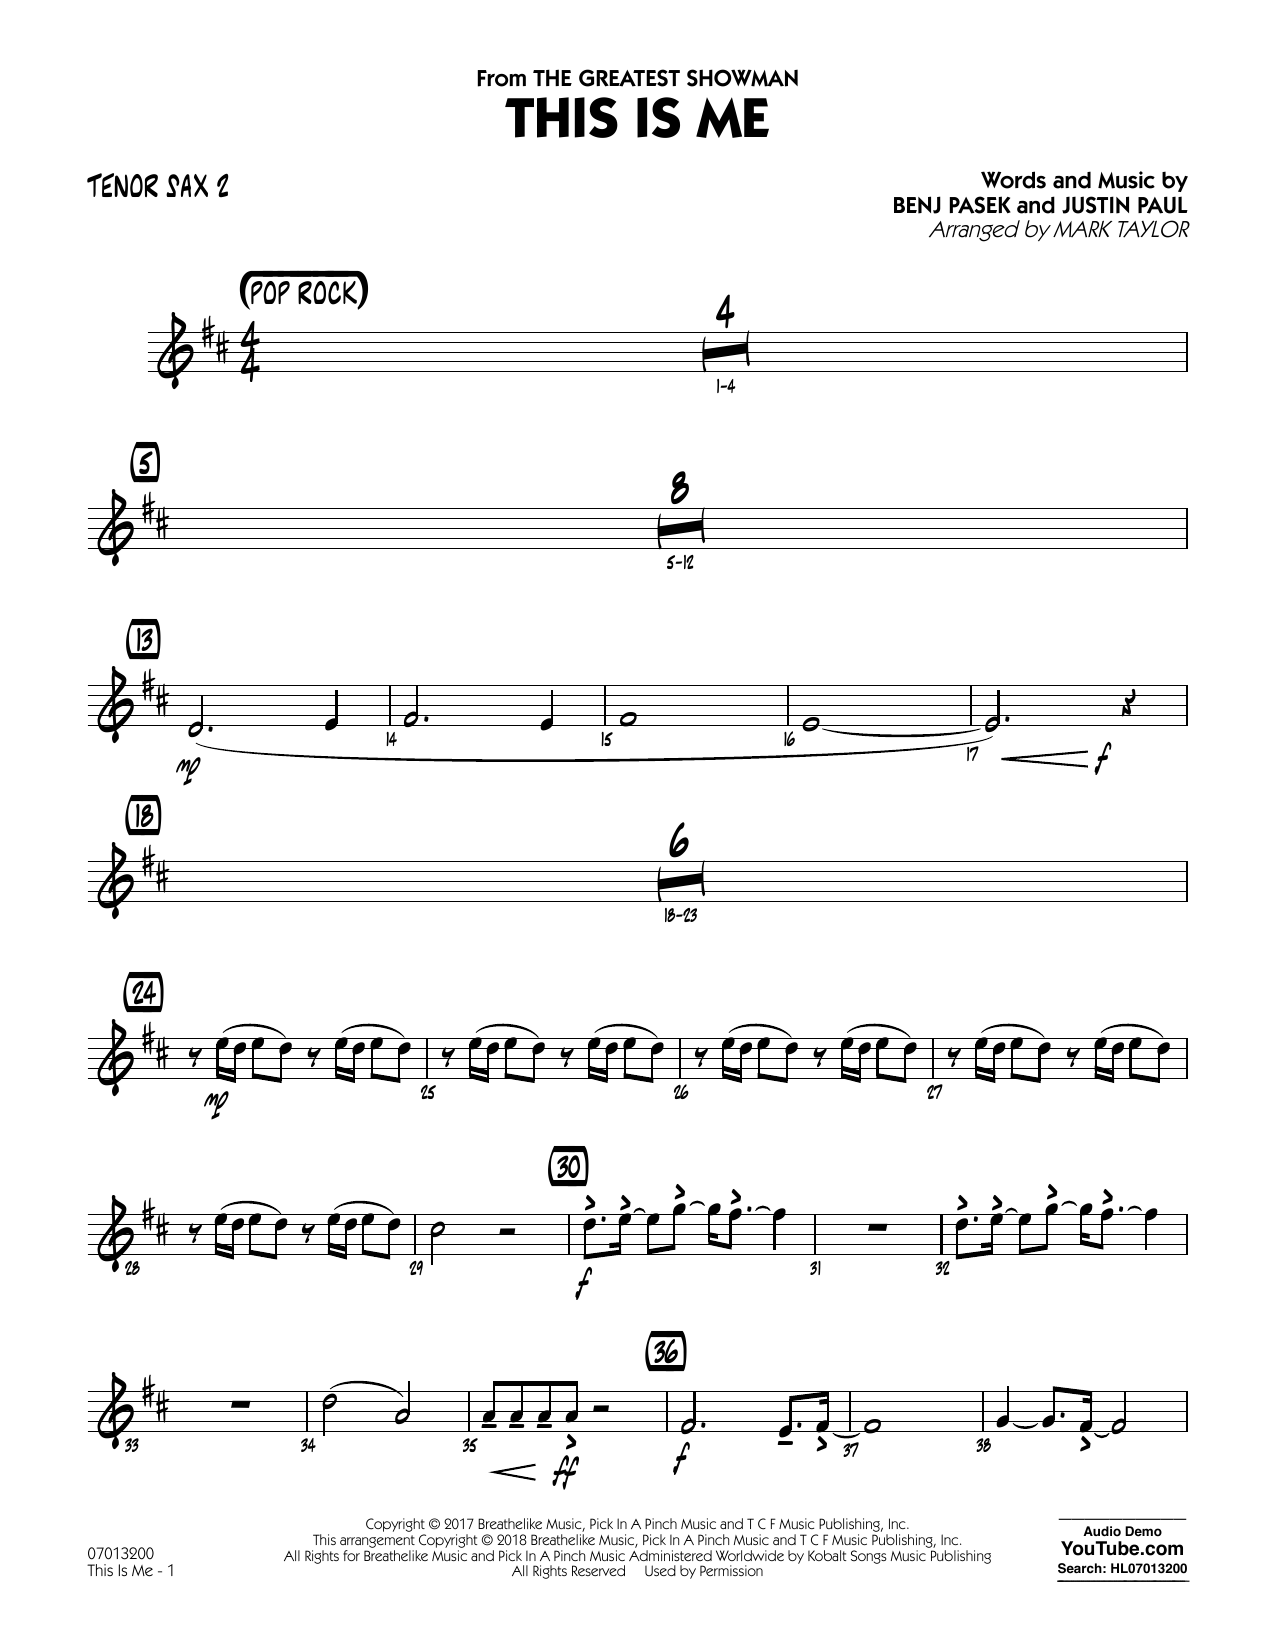 This Is Me (from The Greatest Showman) (arr. Mark Taylor) - Tenor Sax 2 (Jazz Ensemble)